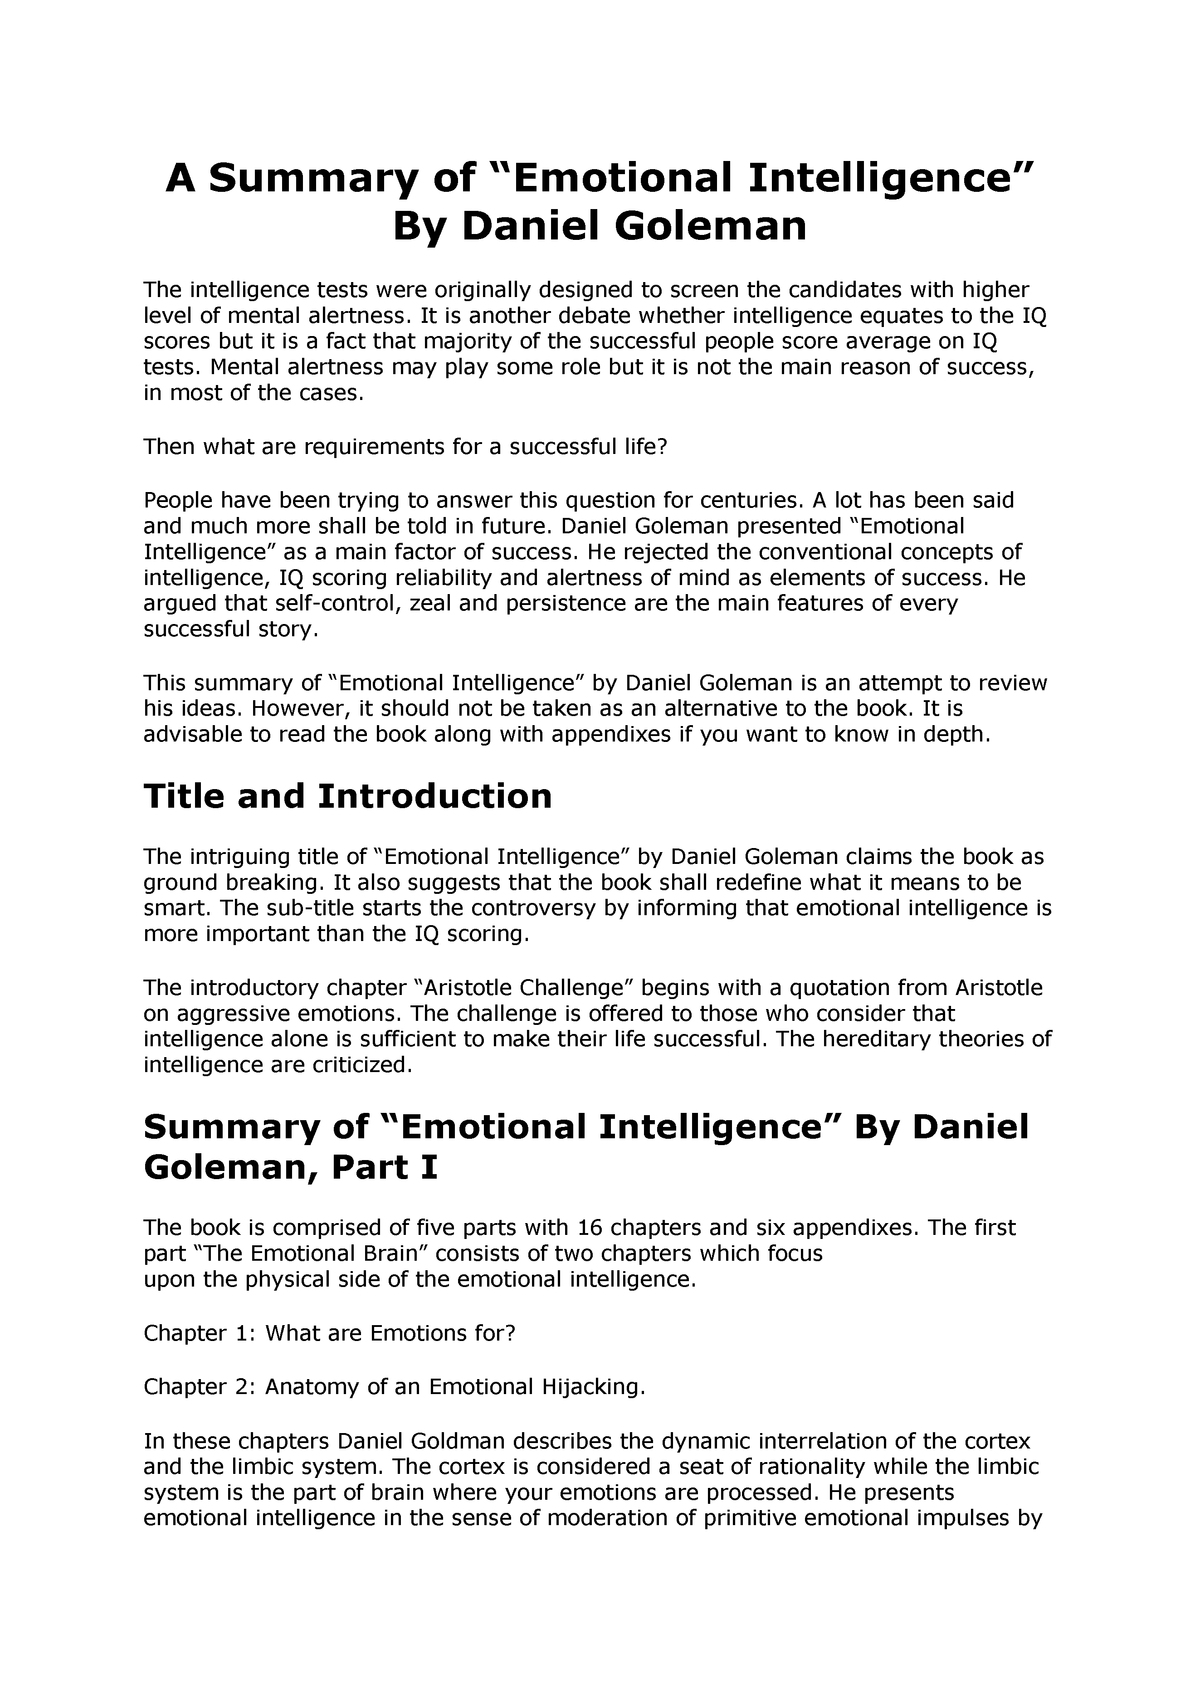 Daniel Goleman - Emotional Intelligence - Summary - PSYC 131 - StuDocu